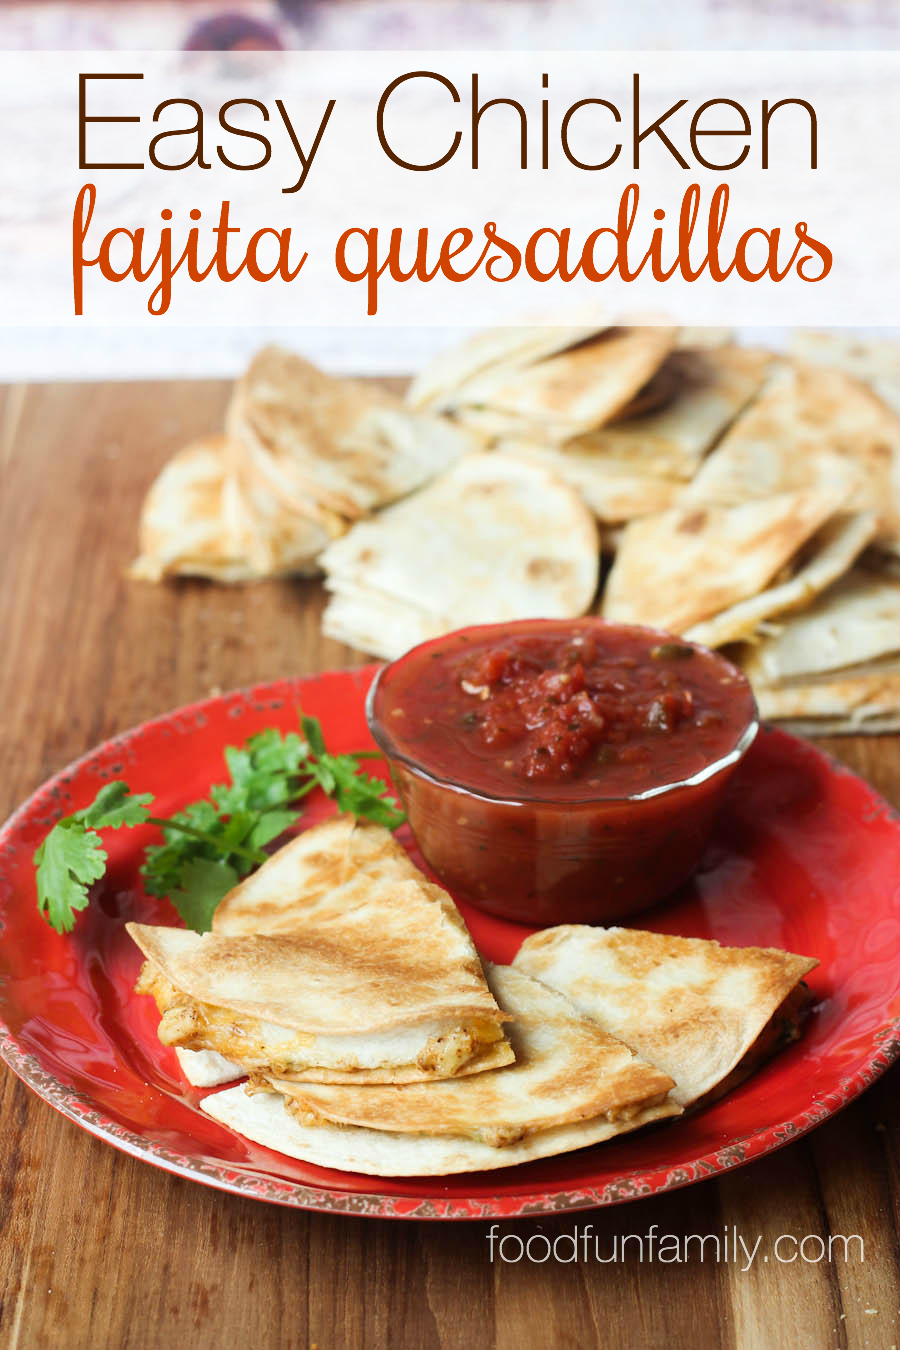 These easy chicken fajita quesadillas could not be any easier or more ...